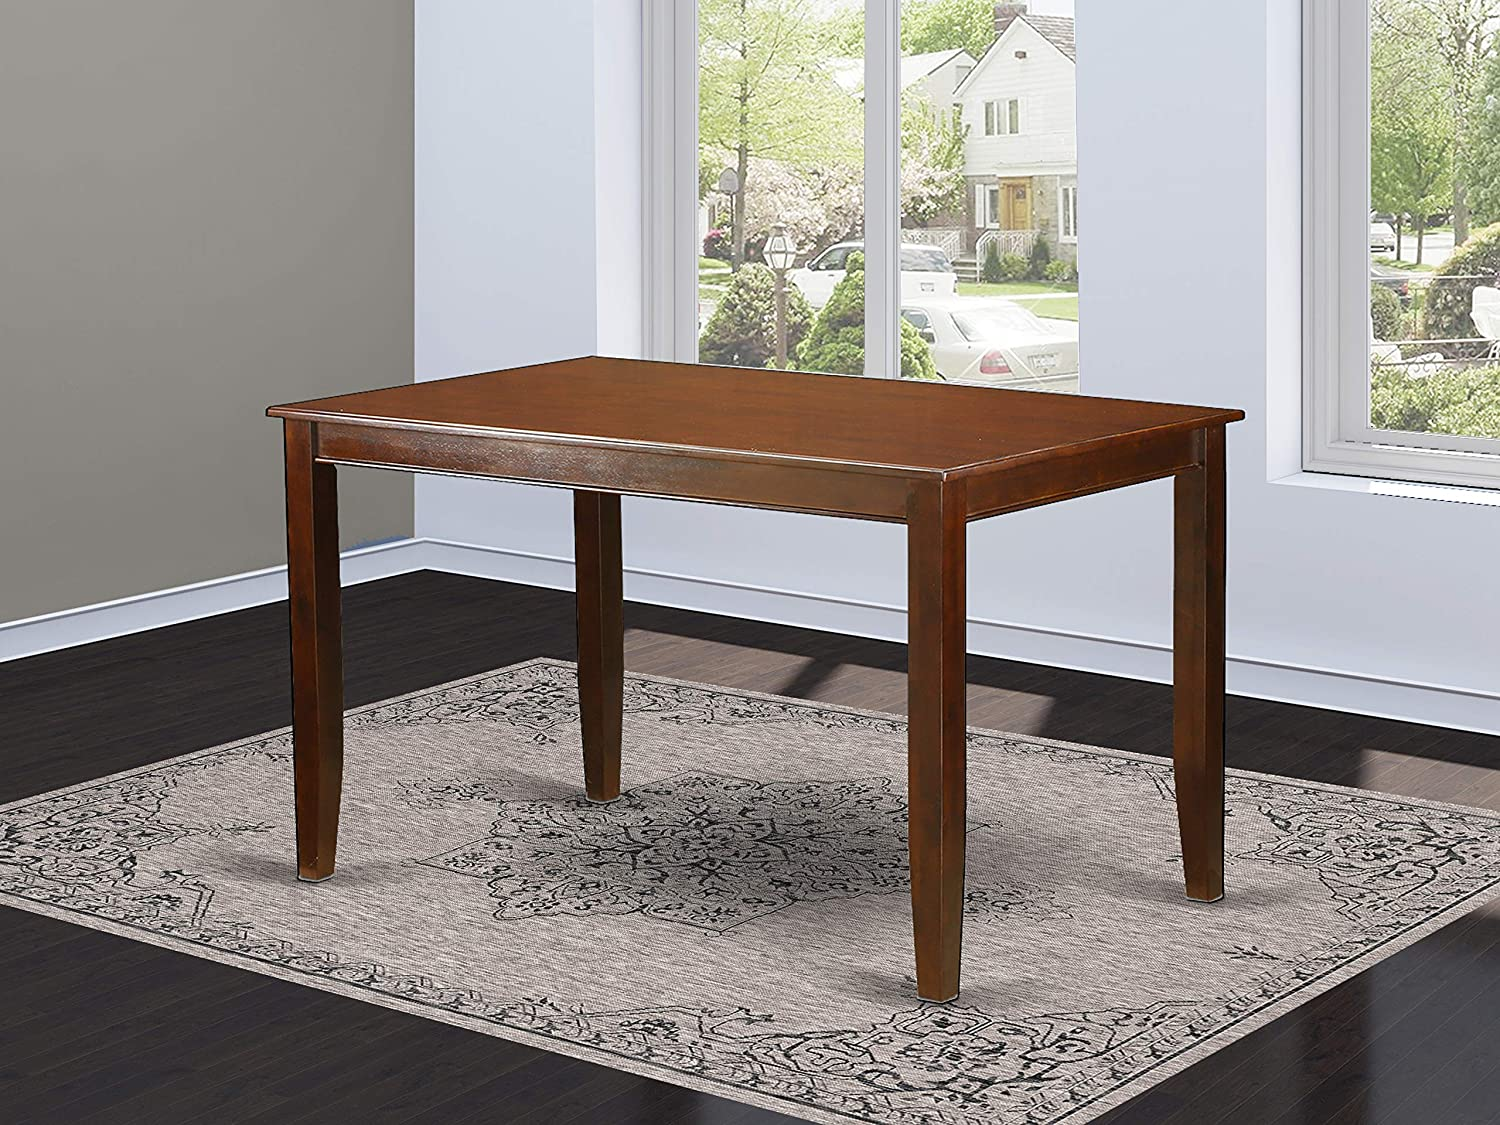 Dudley Rectangular Counter Height Dining Table 36 x60 in Mahogany Finish